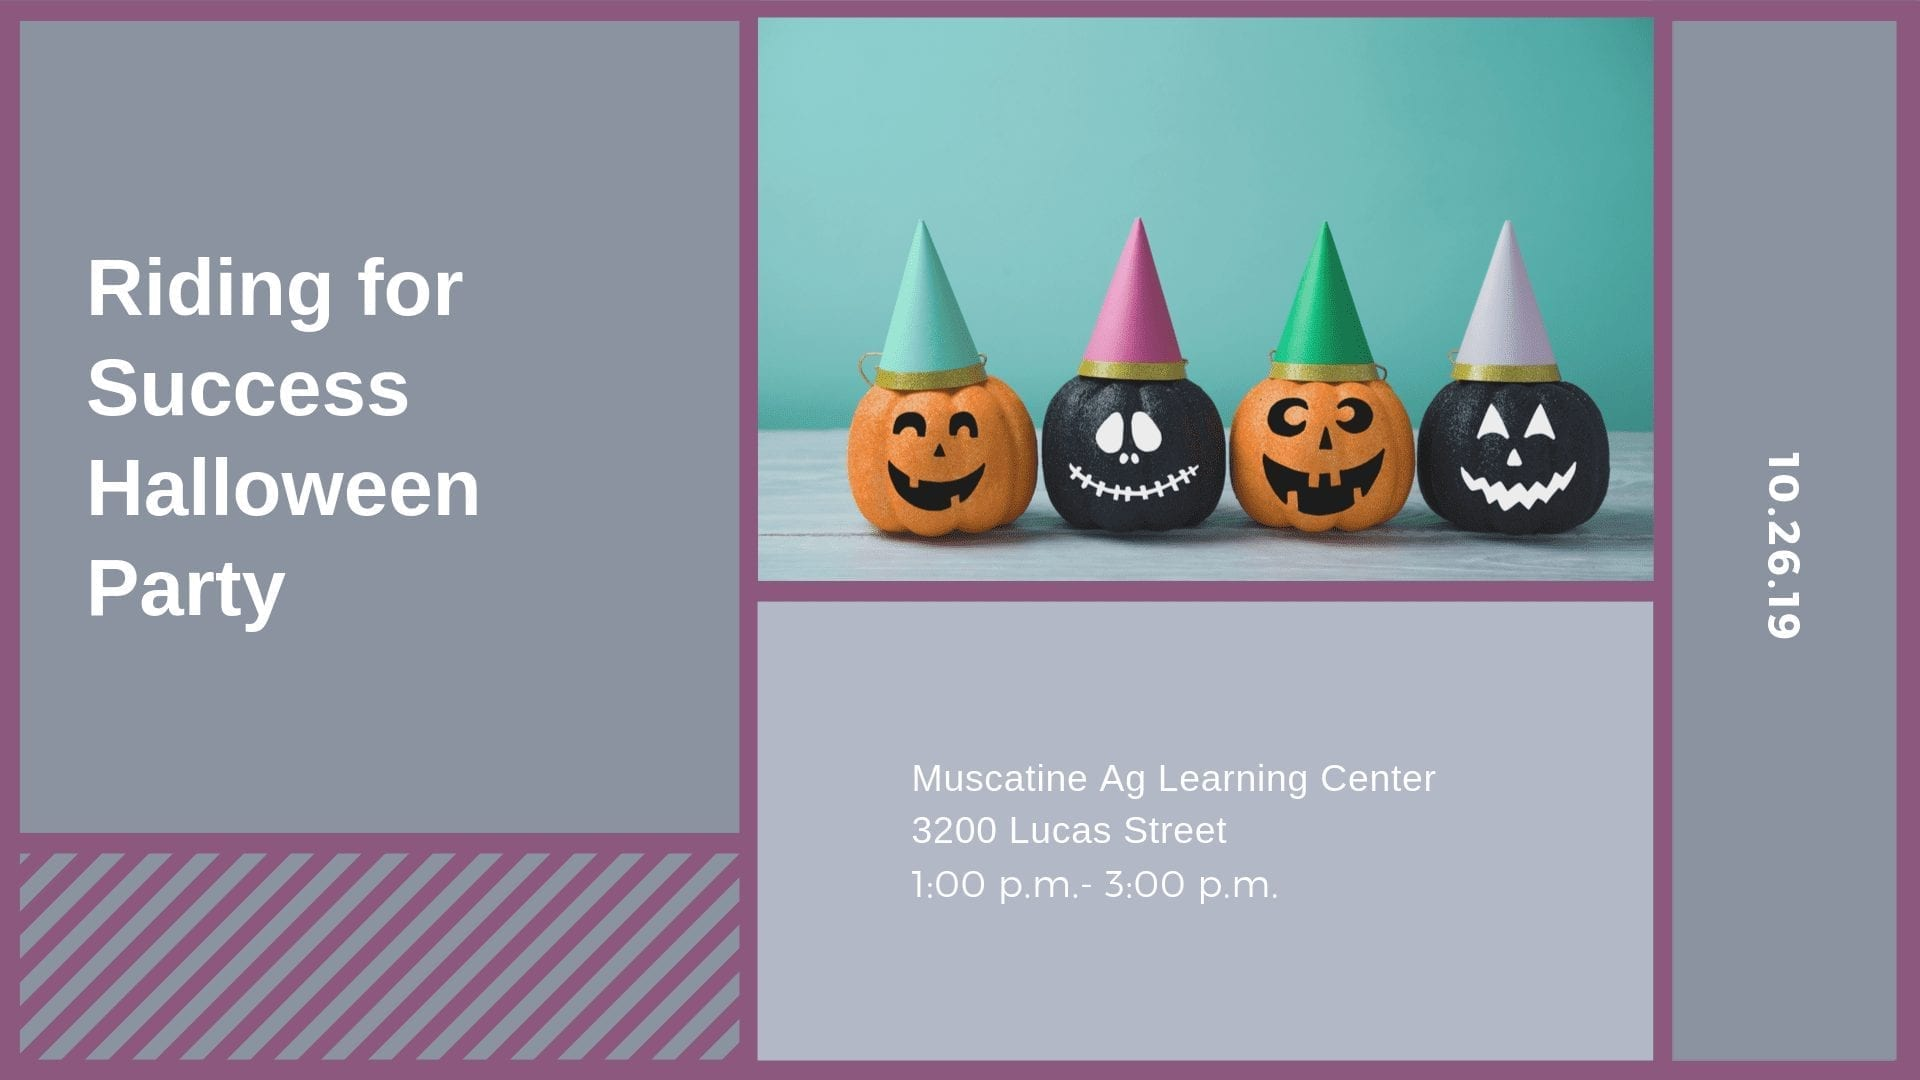 Riding for Success Halloween Party